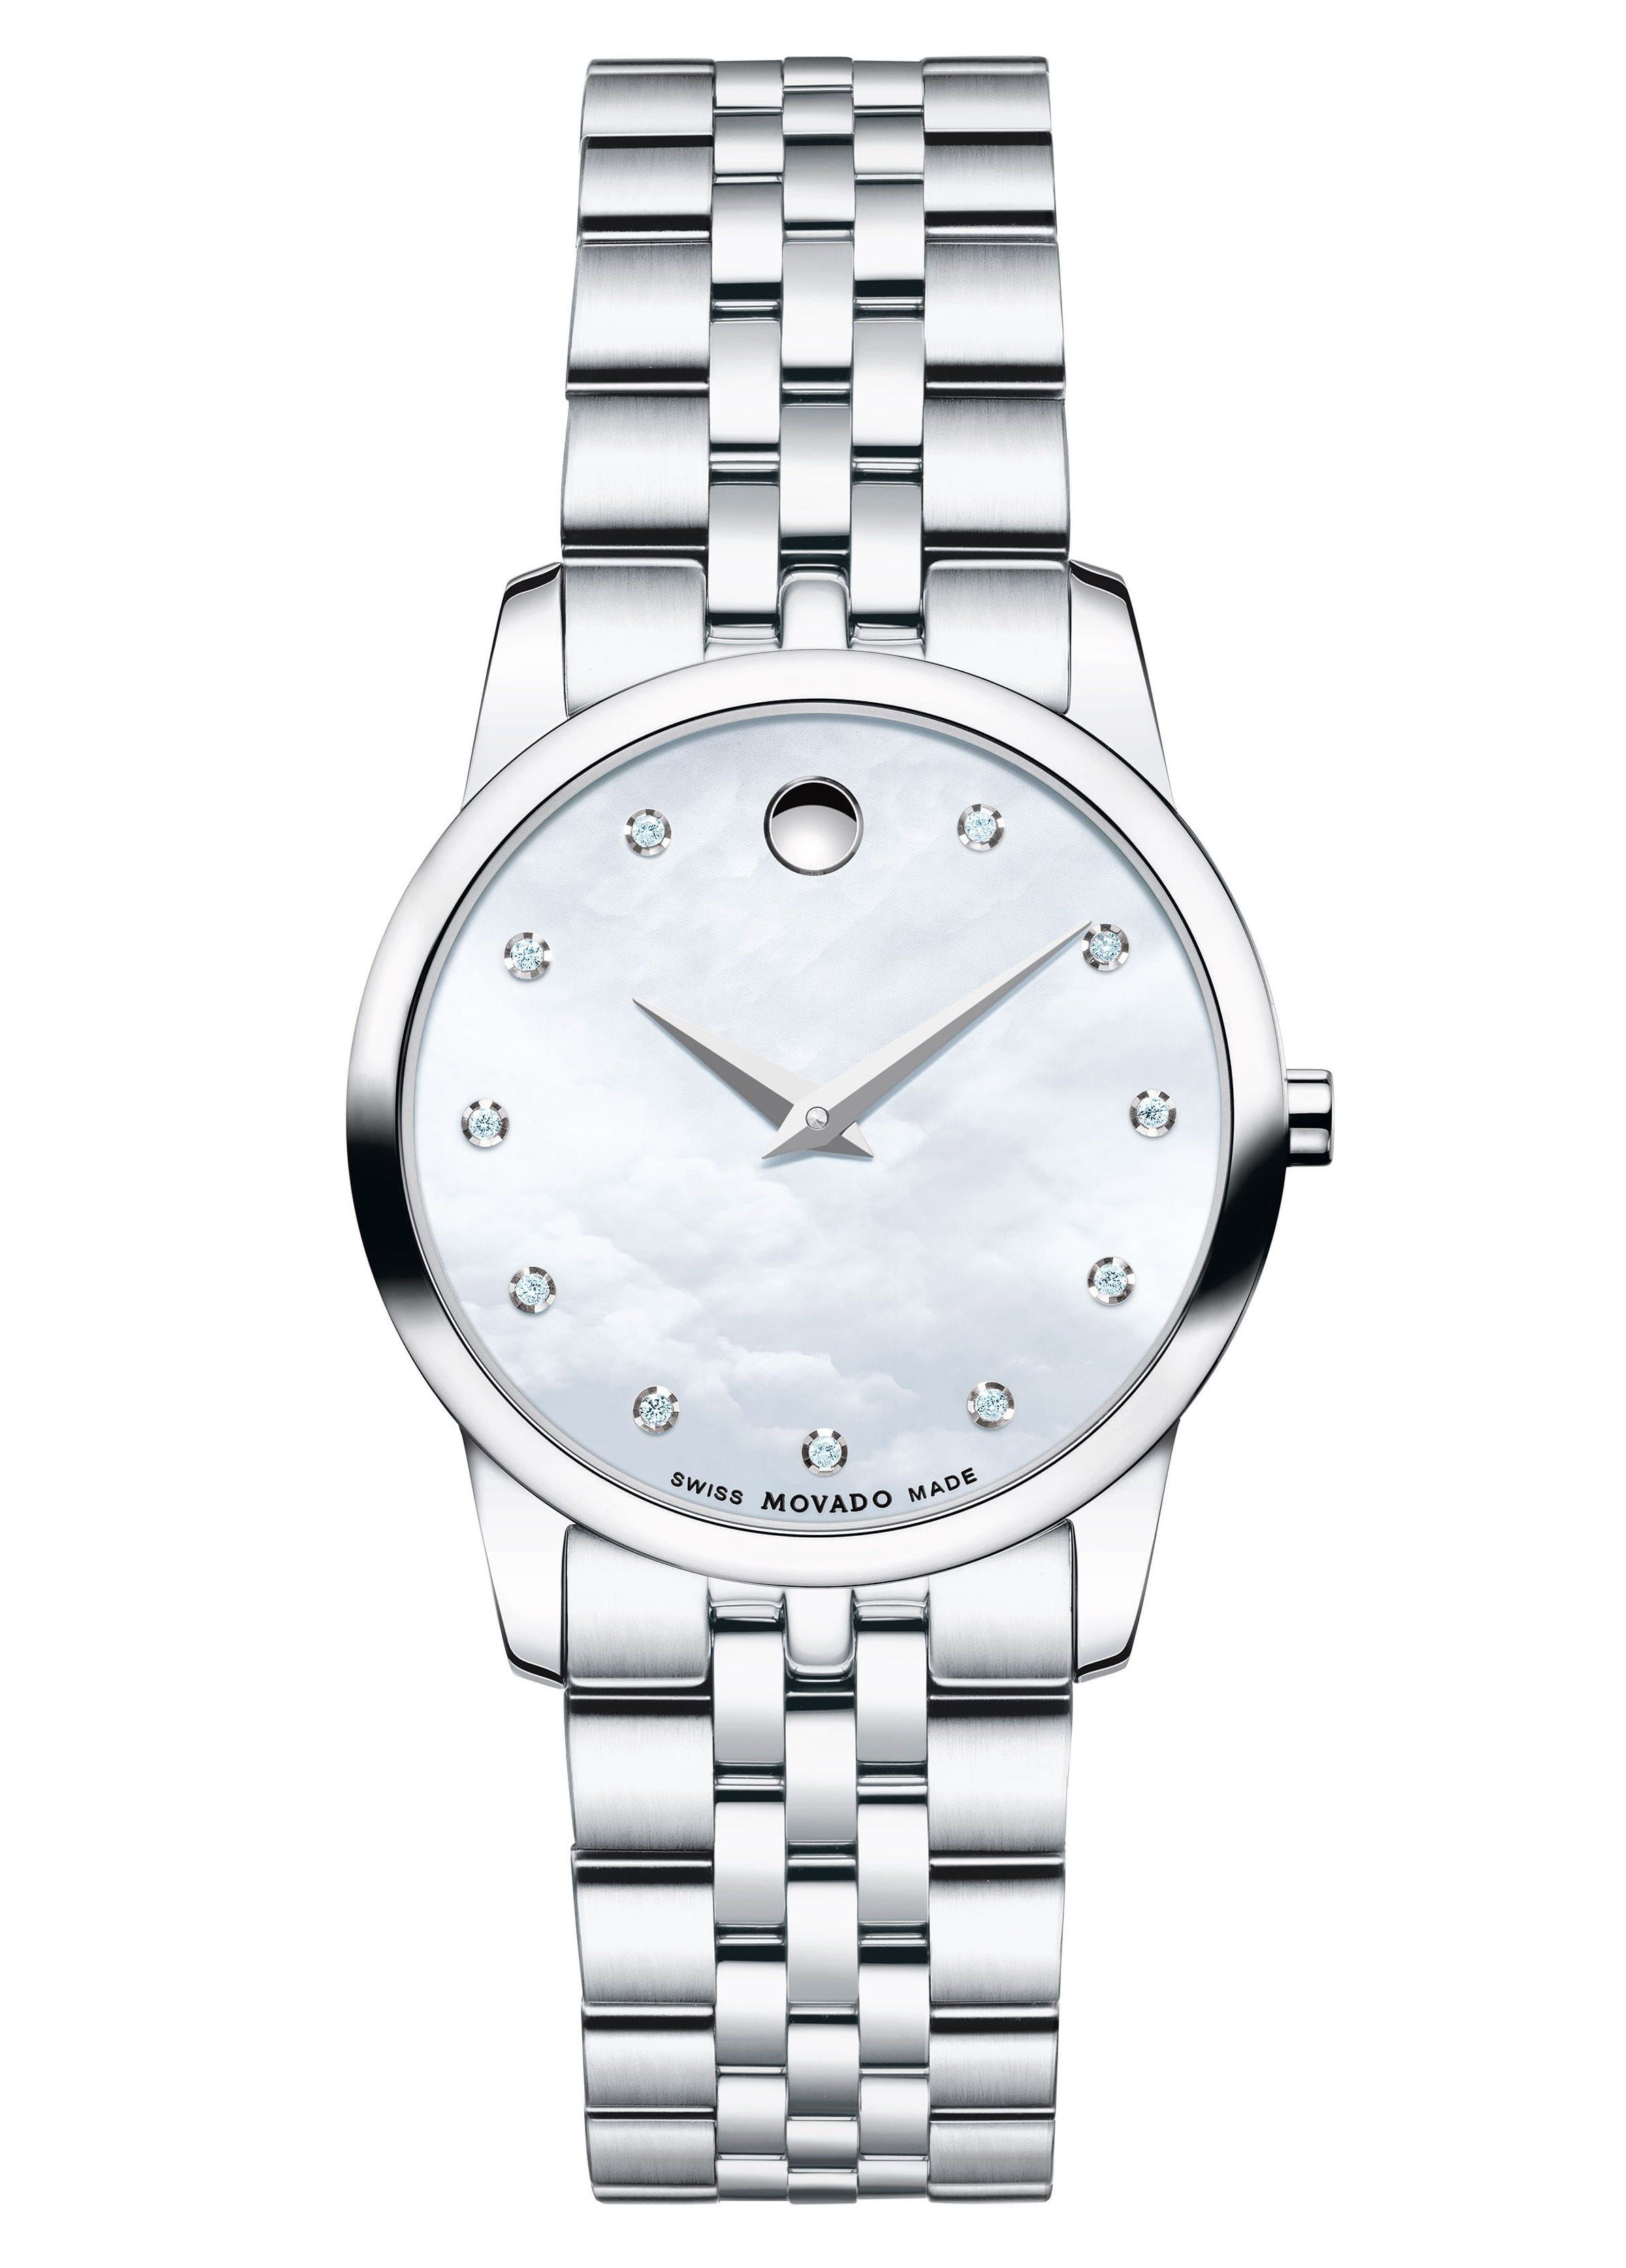 Movado Women's Museum Classic Watch 0606612- $280.00 with Free Shipping + $10 off coupon $270